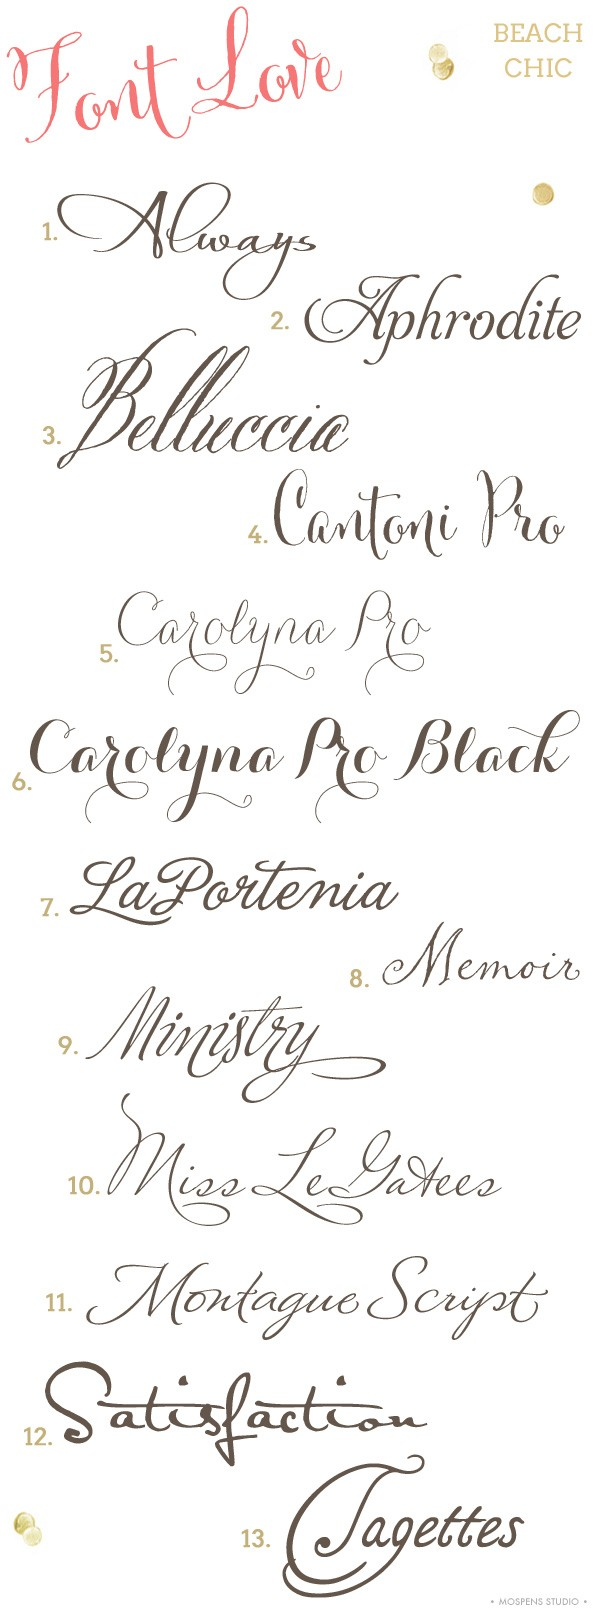 Beach Wedding Invitation Fonts Mospens Studio